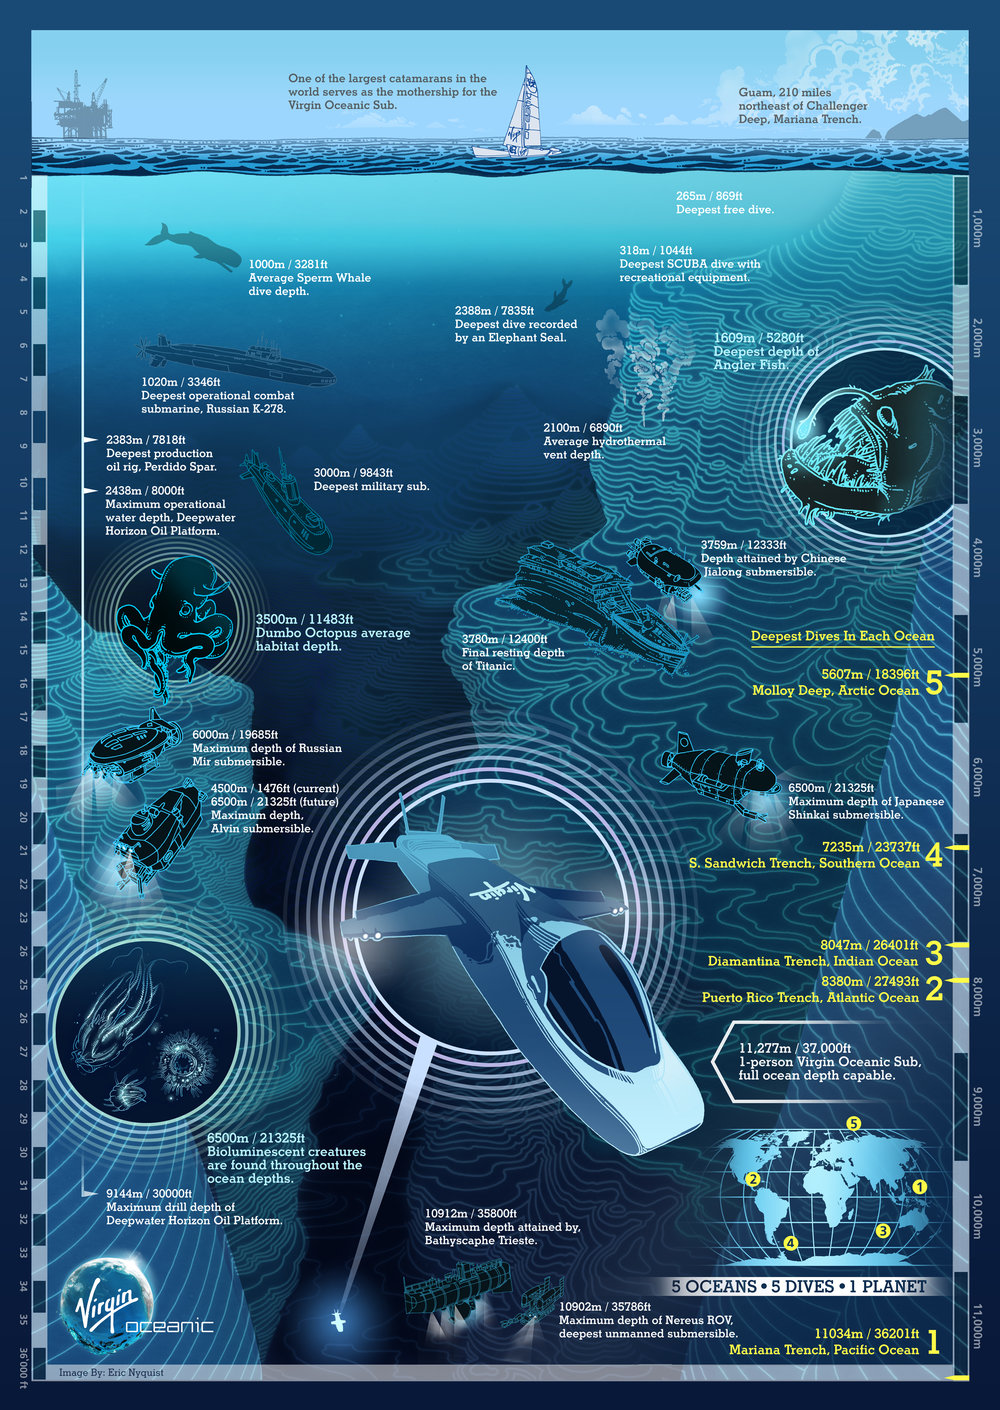 5 Oceans, 5 Dives, 1 Planet Infographic for Sir Richard Branson's unveiling of Virgin Oceanic. Art Director: Karen Lau